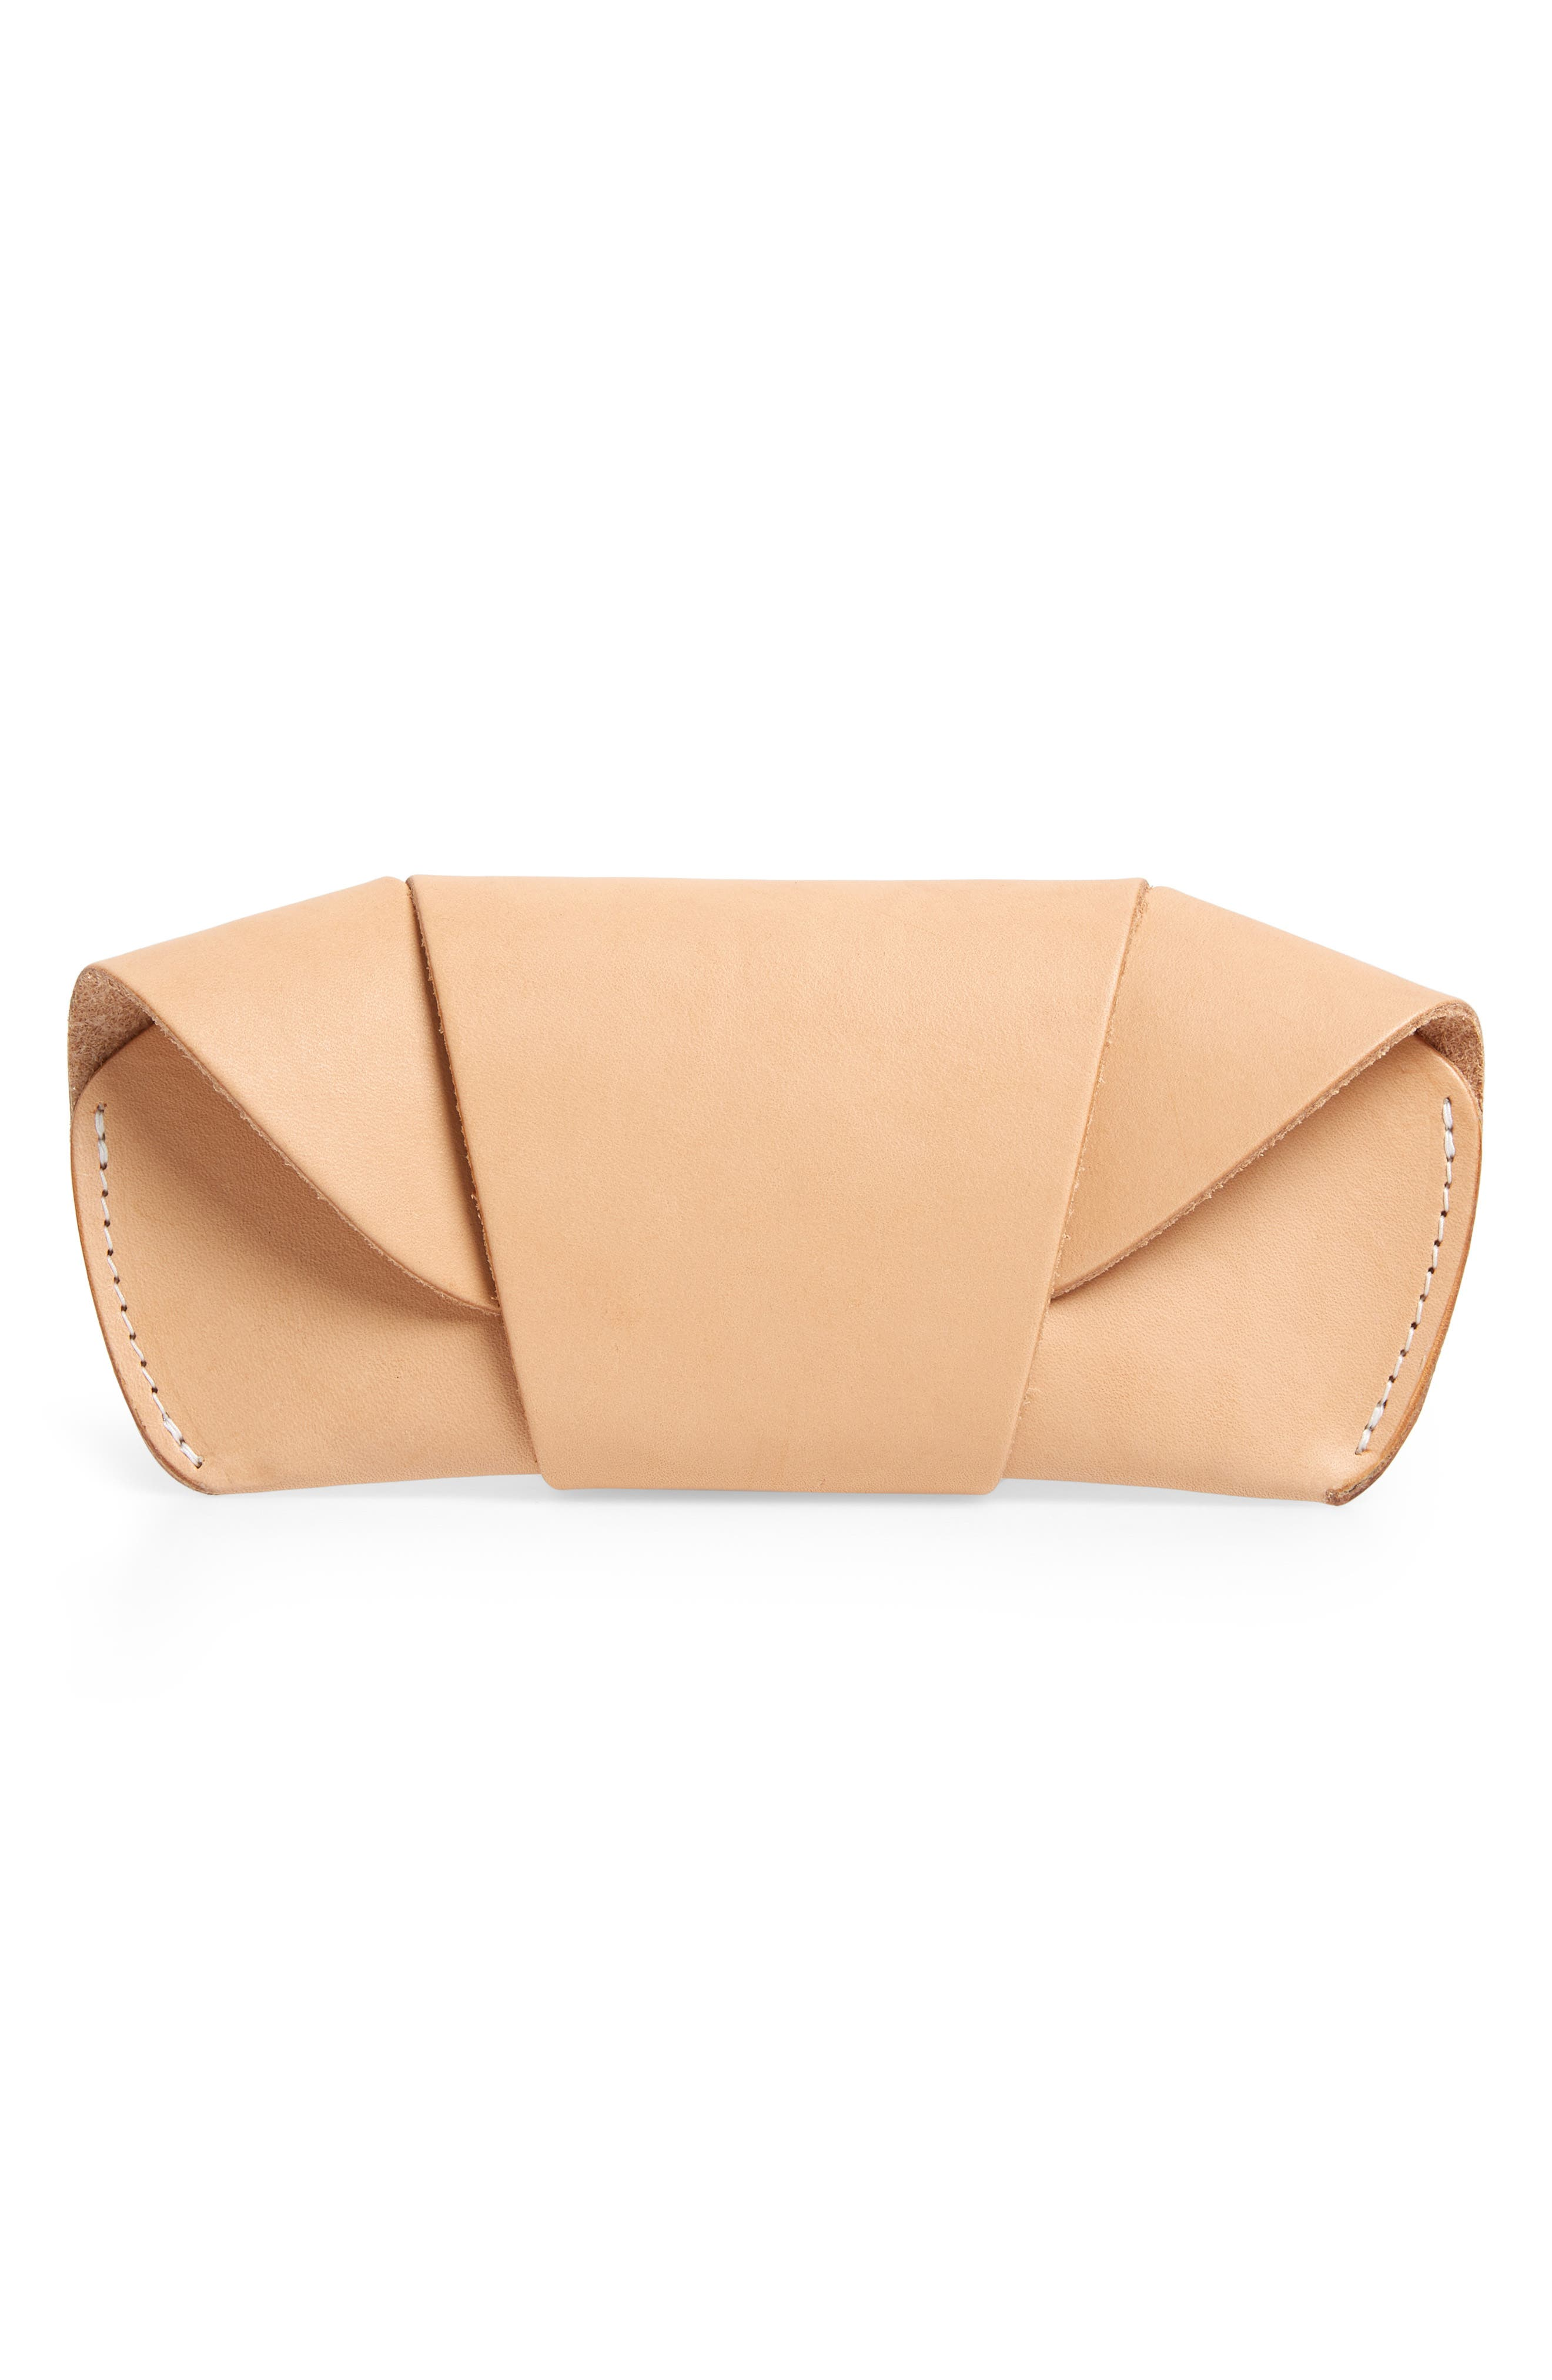 Leather Sunglass Case,                             Main thumbnail 1, color,                             NATURAL